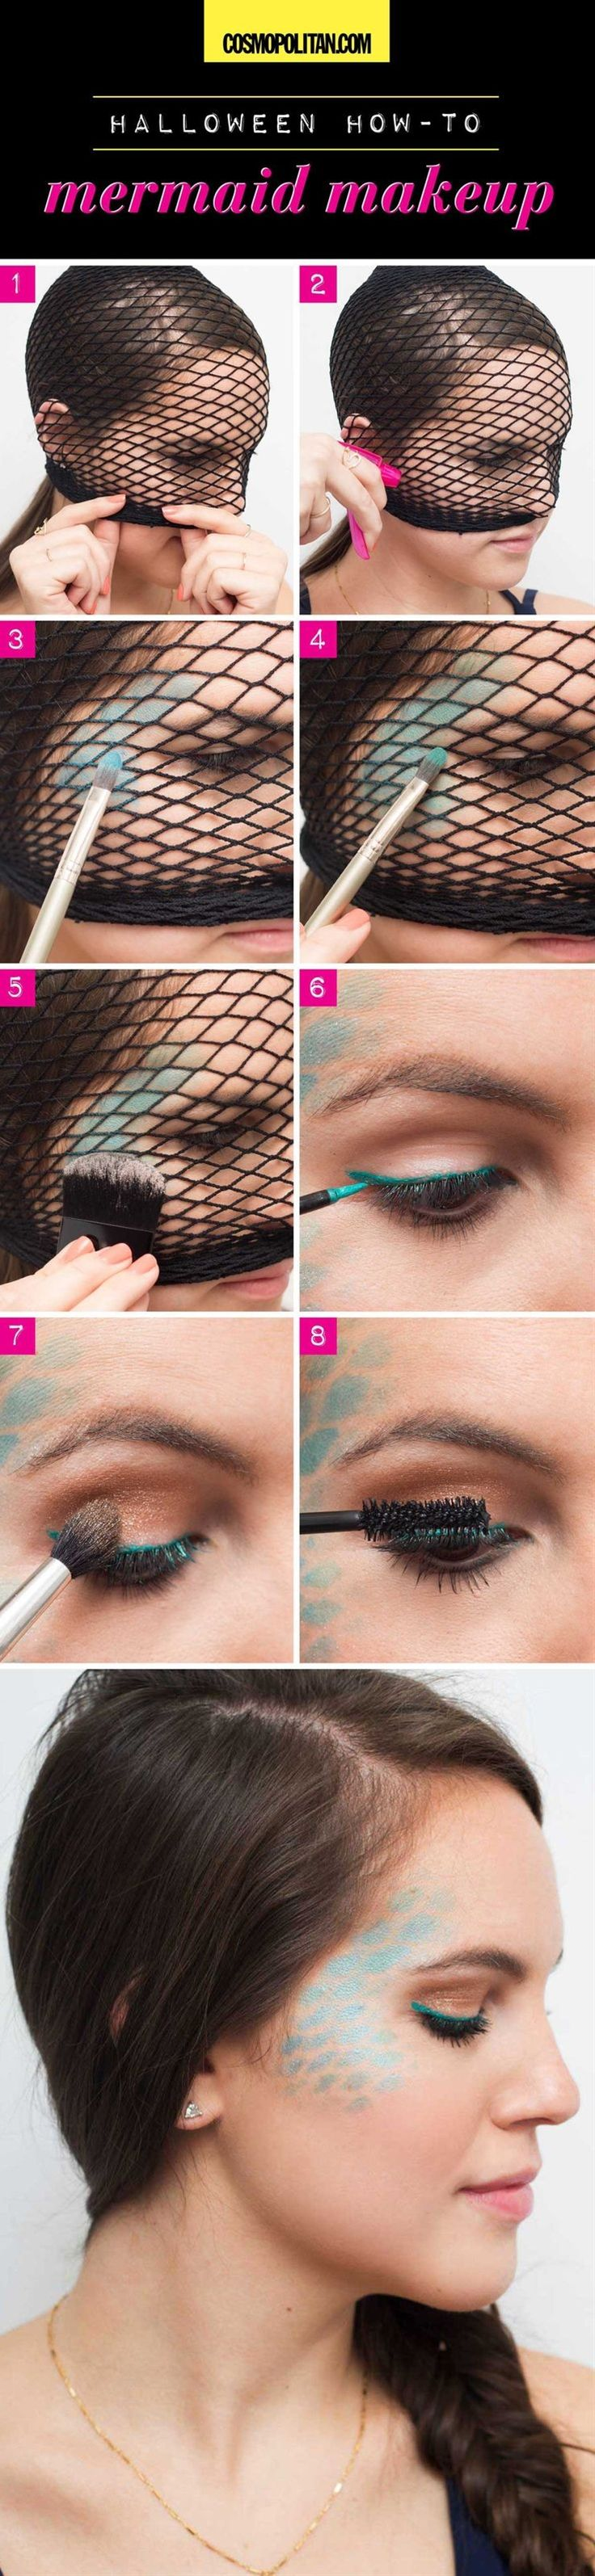 Try this easy mermaid makeup look by using fishnet tights to stencil some scales...